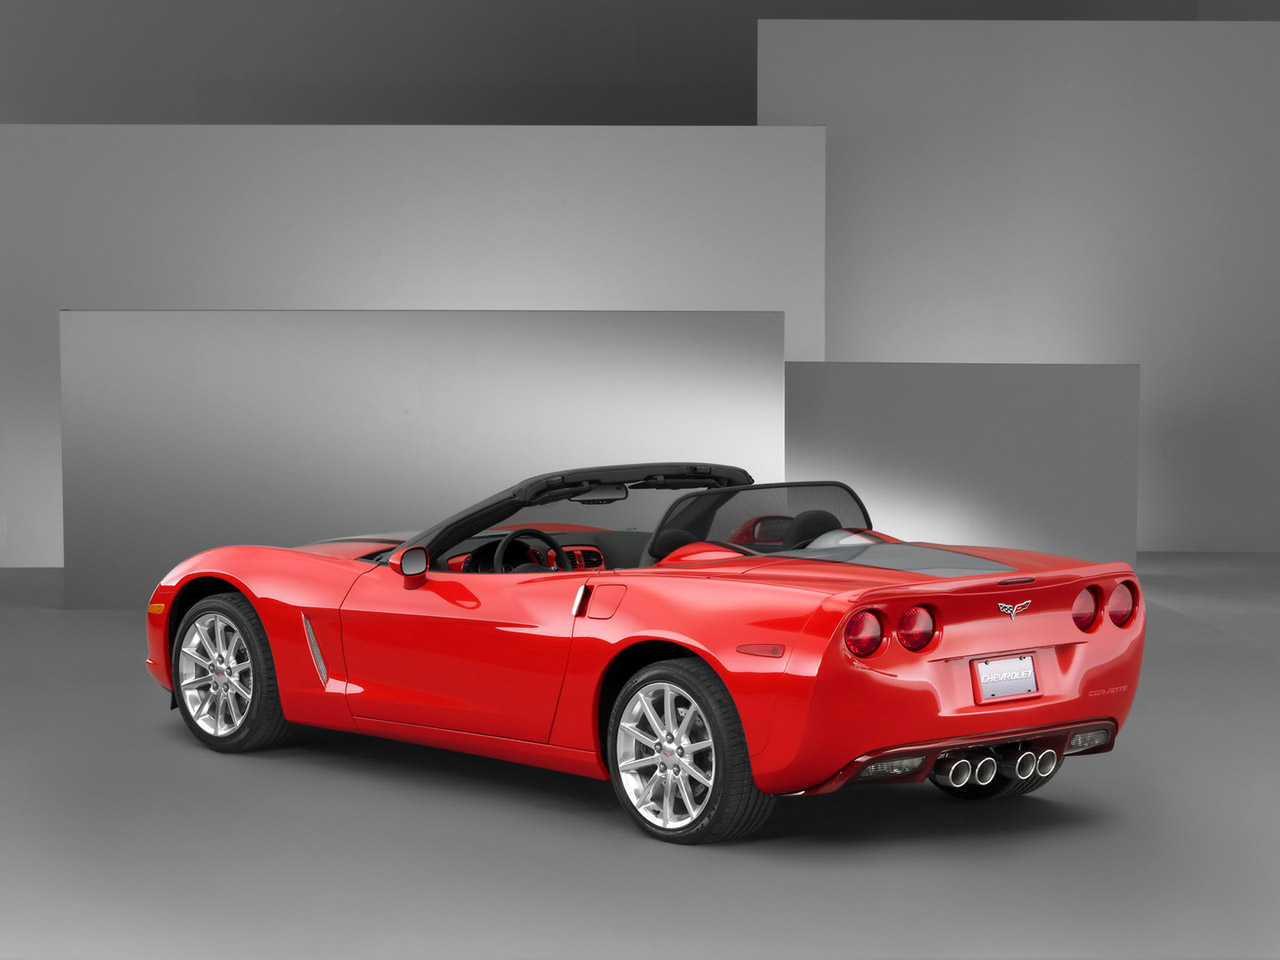 Chevrolet corvette 2005 photo - 4